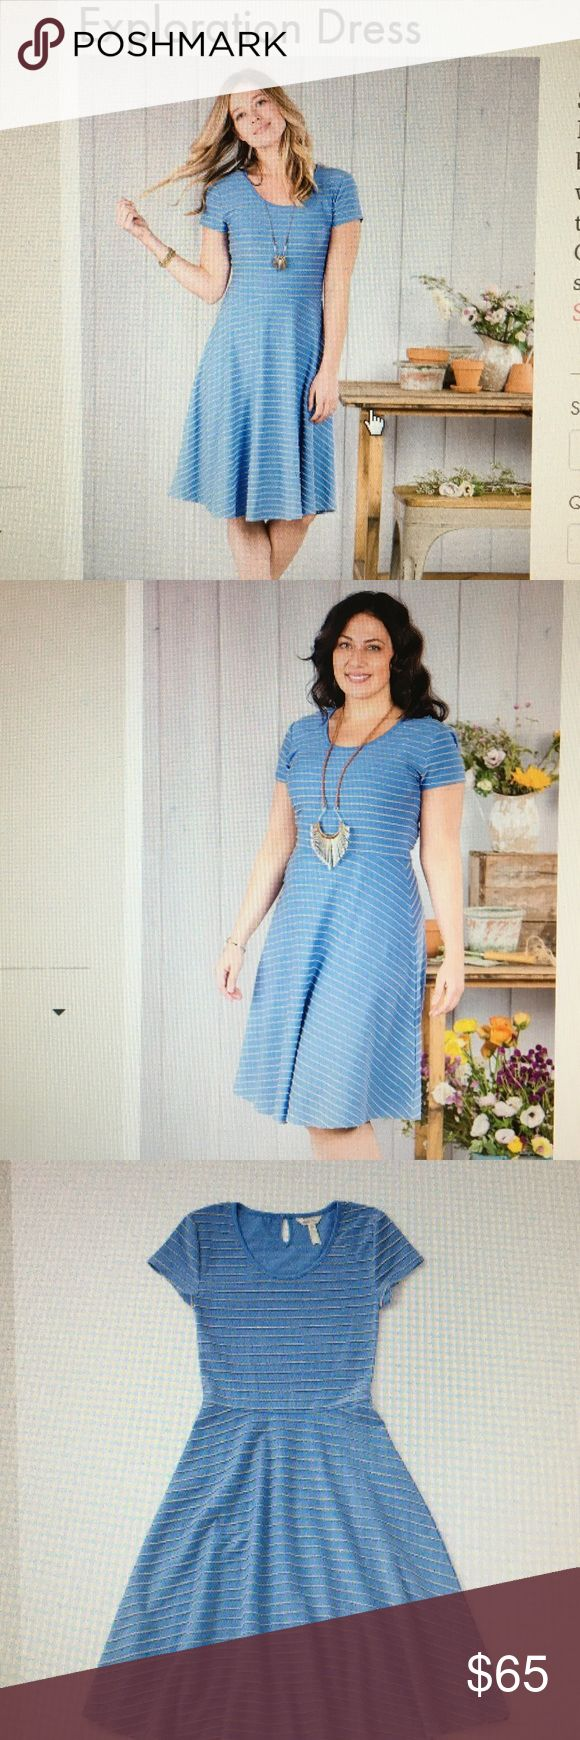 Matilda Jane Exploration dress NWT, Feb 2017 XL Matilda Jane Exploration dress, never worn. Only selling because it didn't fit me. Very comfortable knit with tan stripe. Very cute with a cardigan now or without for spring. Originally $72 Matilda Jane Dresses